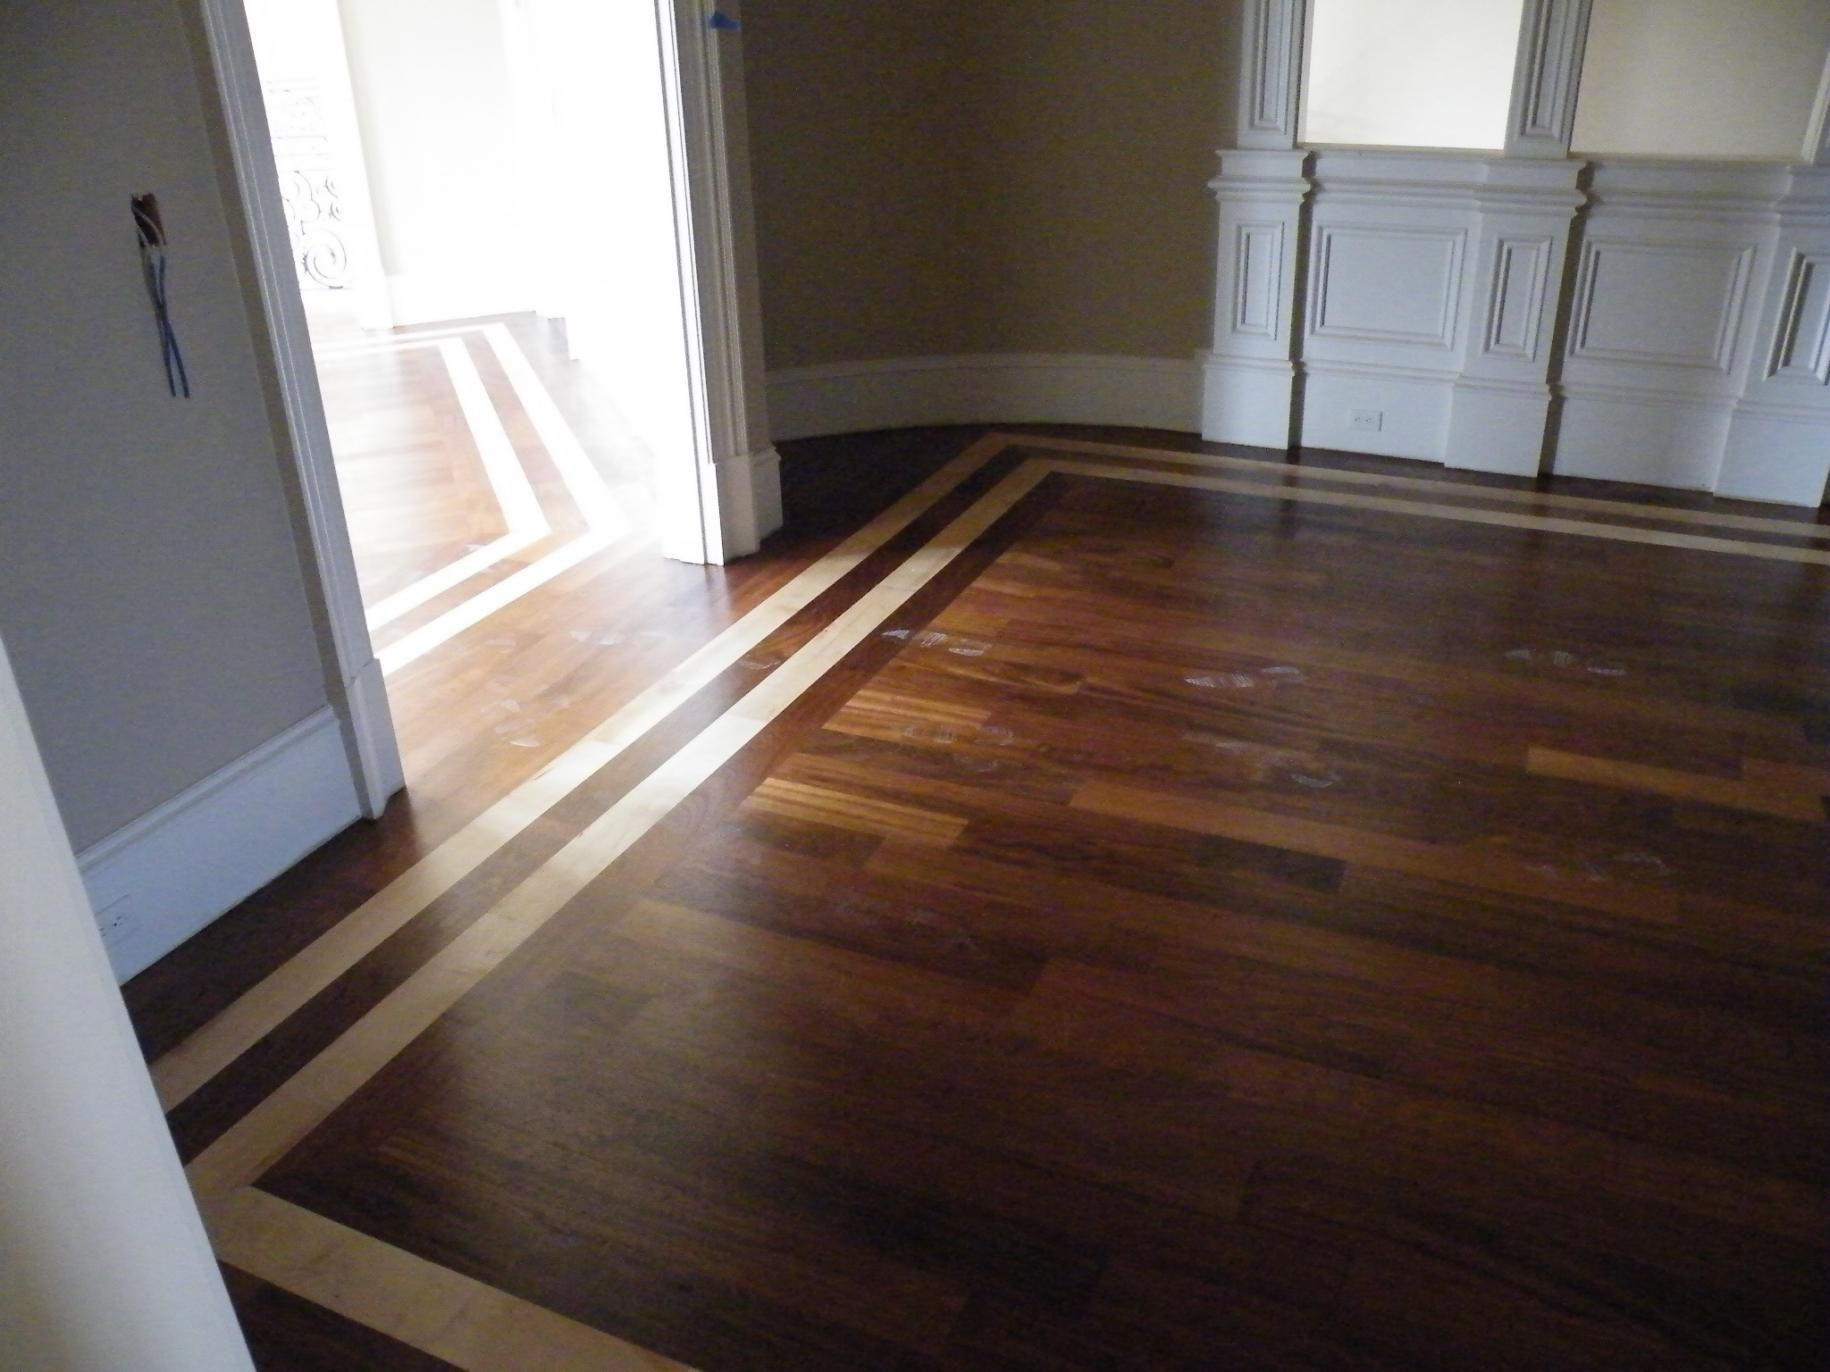 Hardwood Floor Refinishing In Maryland Of Wood Floor Borders Hardwood Floor Inlay Flooring Contractor In Wood Floor Borders Hardwood Floor Inlay Flooring Contractor Talk